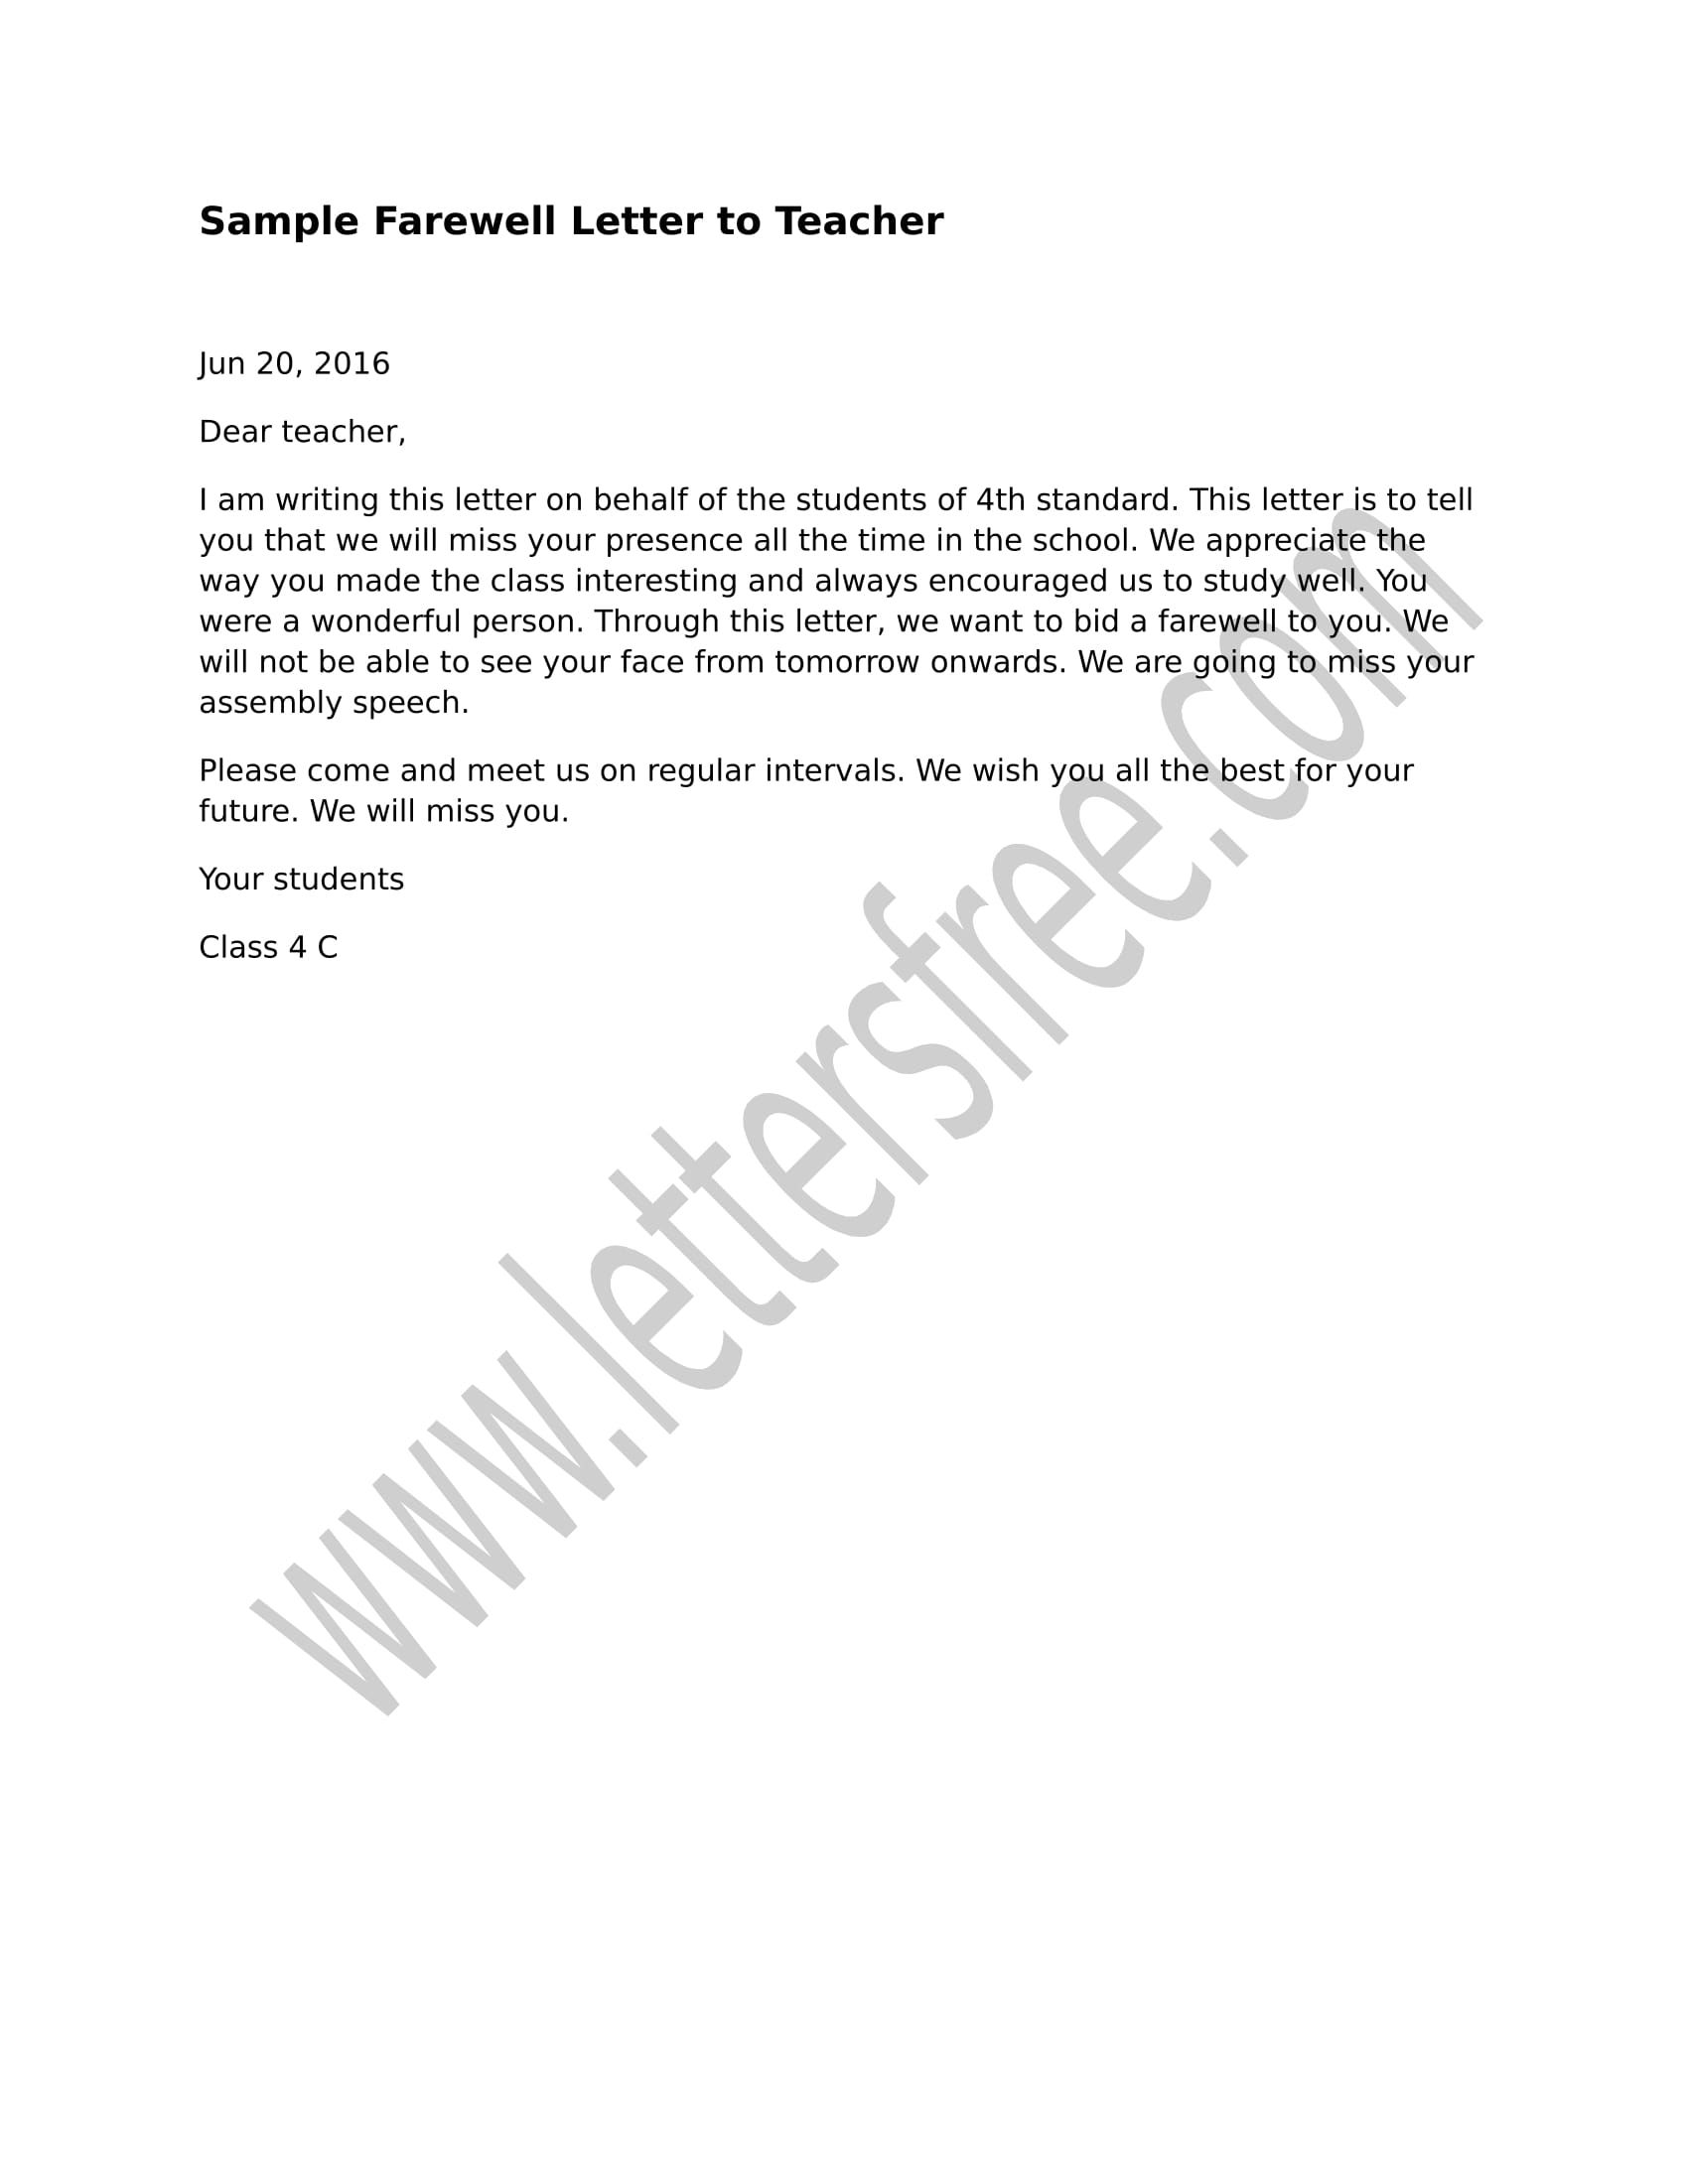 Farewell letter to teacher teacher sample farewell letter to teacher to pay thanks for sharing a sweet friendly bonding with them thecheapjerseys